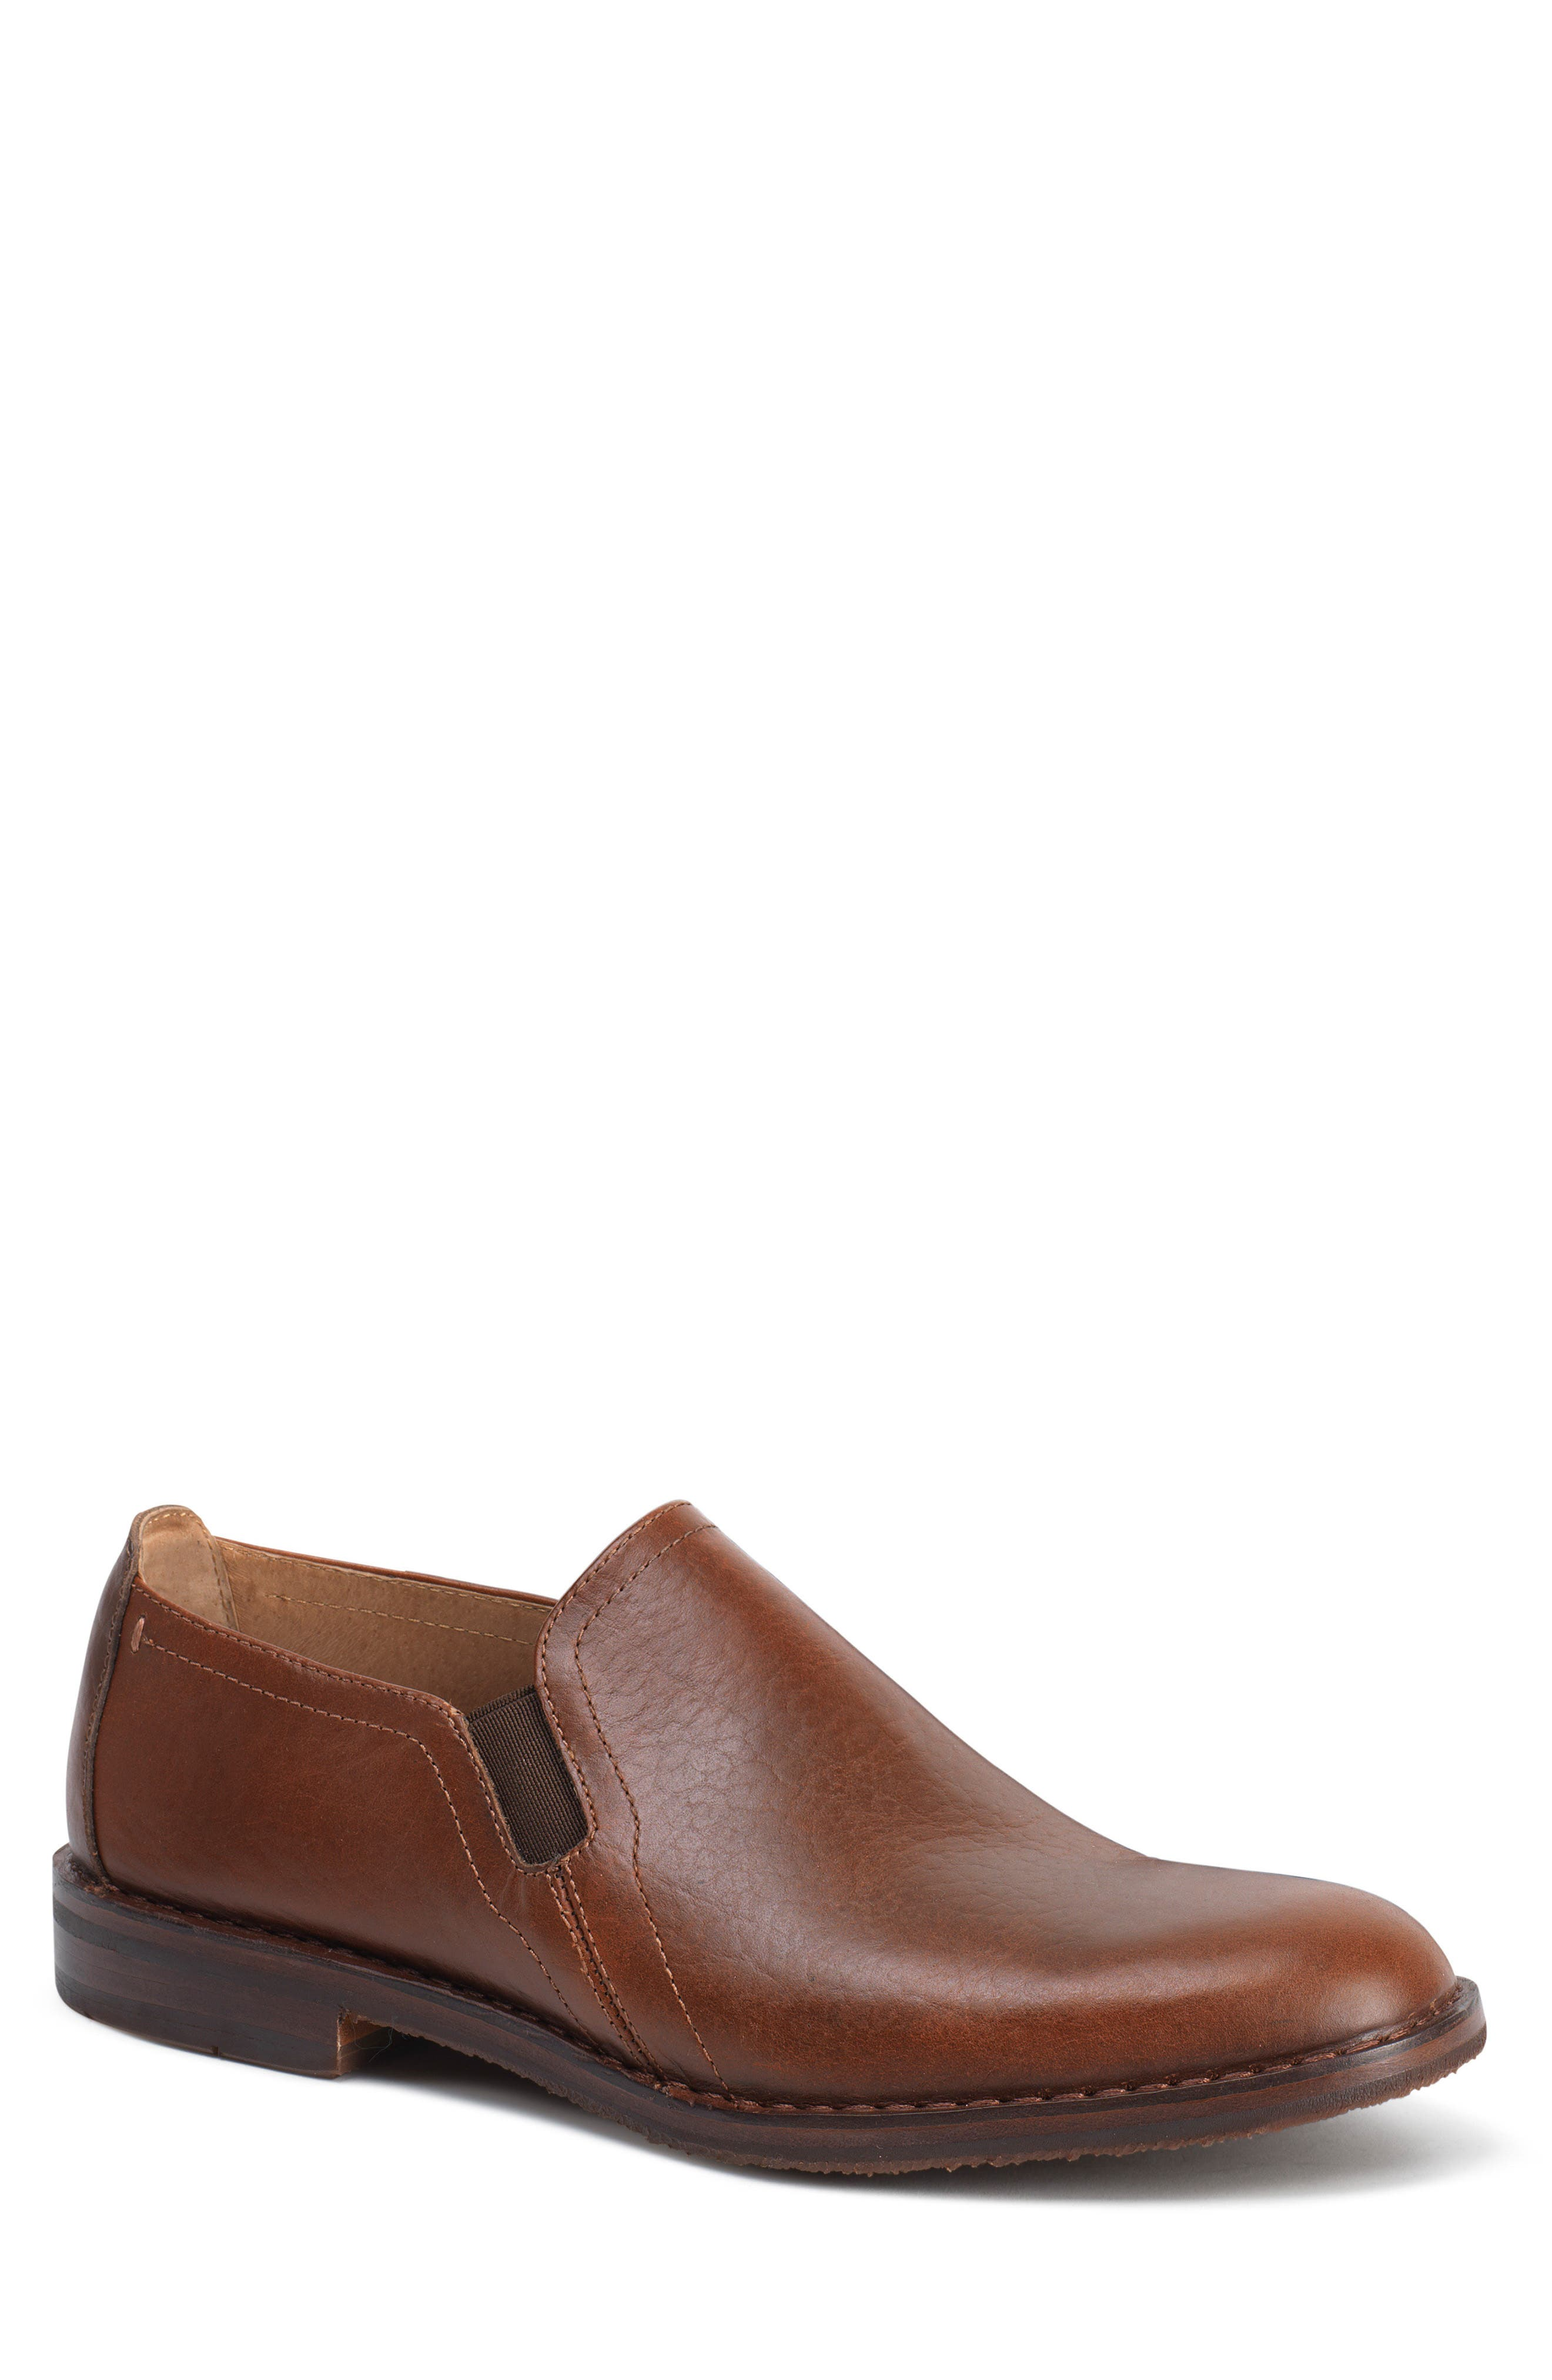 Alternate Image 1 Selected - Trask 'Blaine' Venetian Loafer (Men)